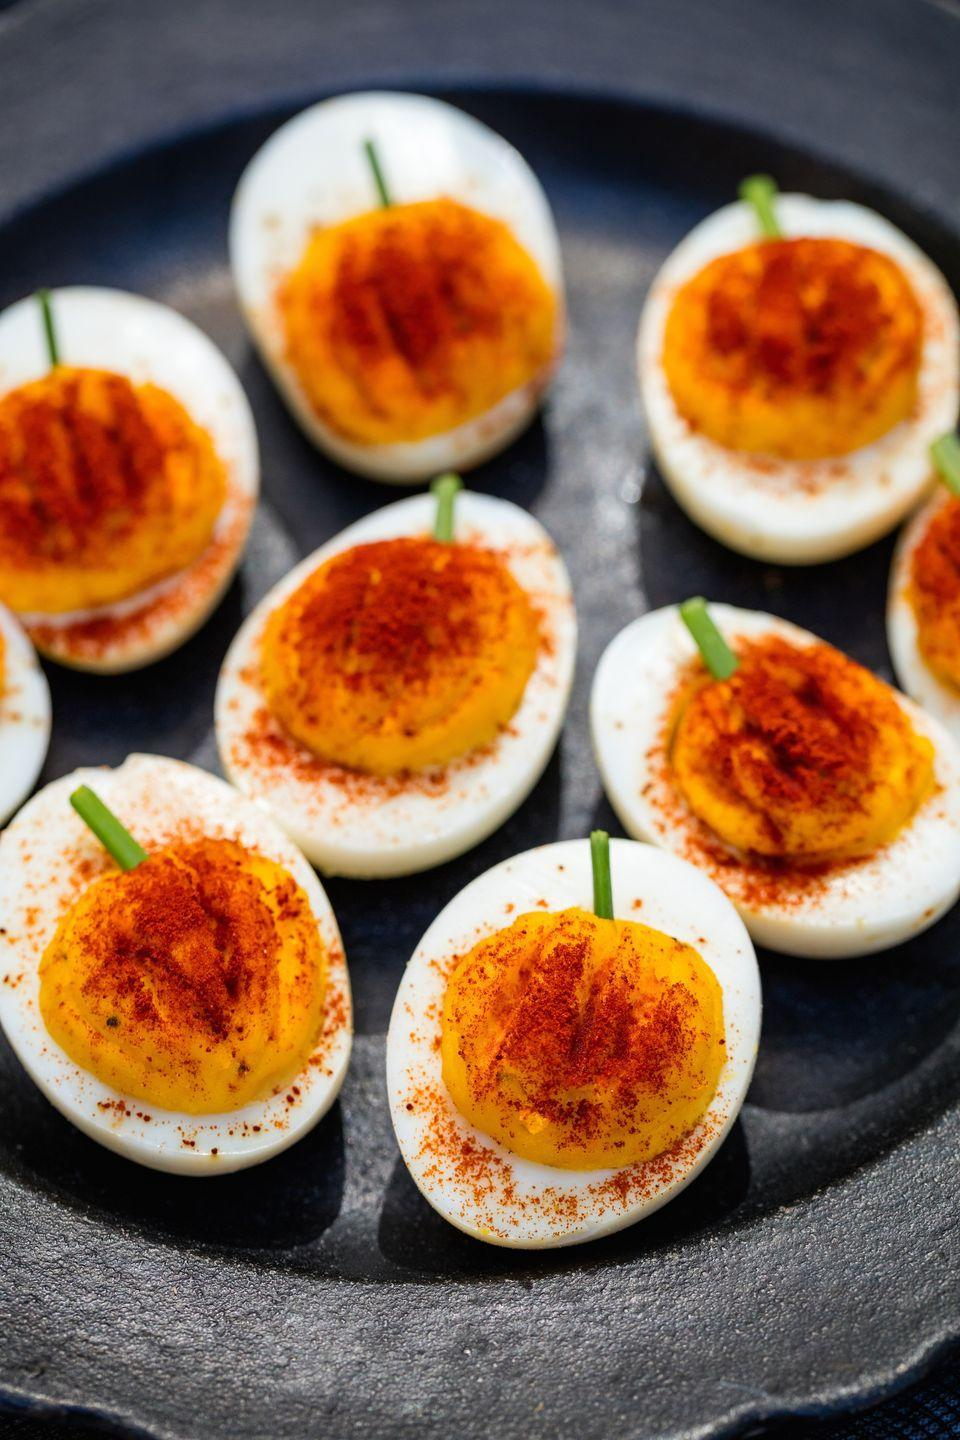 """<p>These pumpkin deviled eggs are way easier to make than a jack-o'-lantern. Paprika gives each its bold color, while a fresh chive makes for the perfect stem.</p><p>Get the recipe from <a href=""""https://www.delish.com/cooking/recipe-ideas/recipes/a44140/pumpkin-deviled-eggs-recipe/"""" rel=""""nofollow noopener"""" target=""""_blank"""" data-ylk=""""slk:Delish"""" class=""""link rapid-noclick-resp"""">Delish</a>. </p>"""